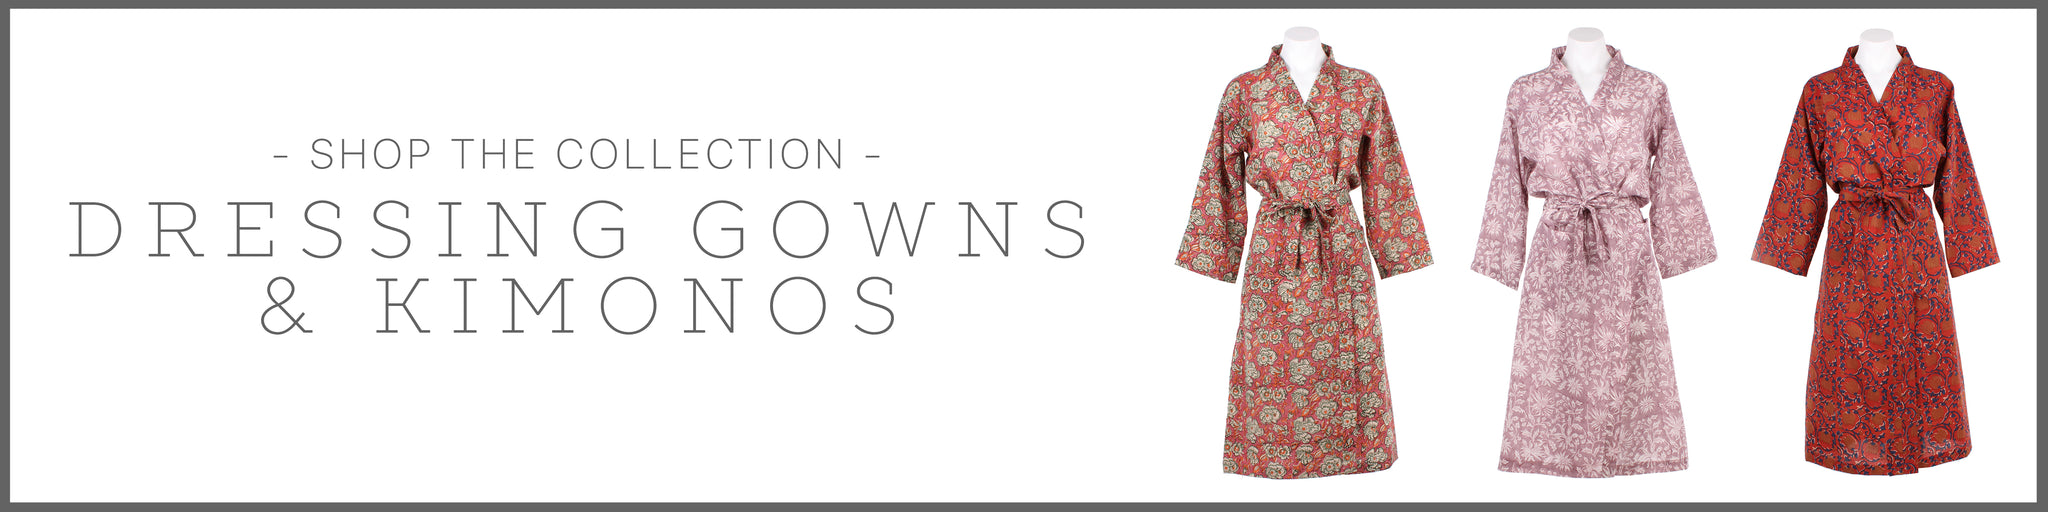 Dressing Gowns & Kimonos at Maven & Kit